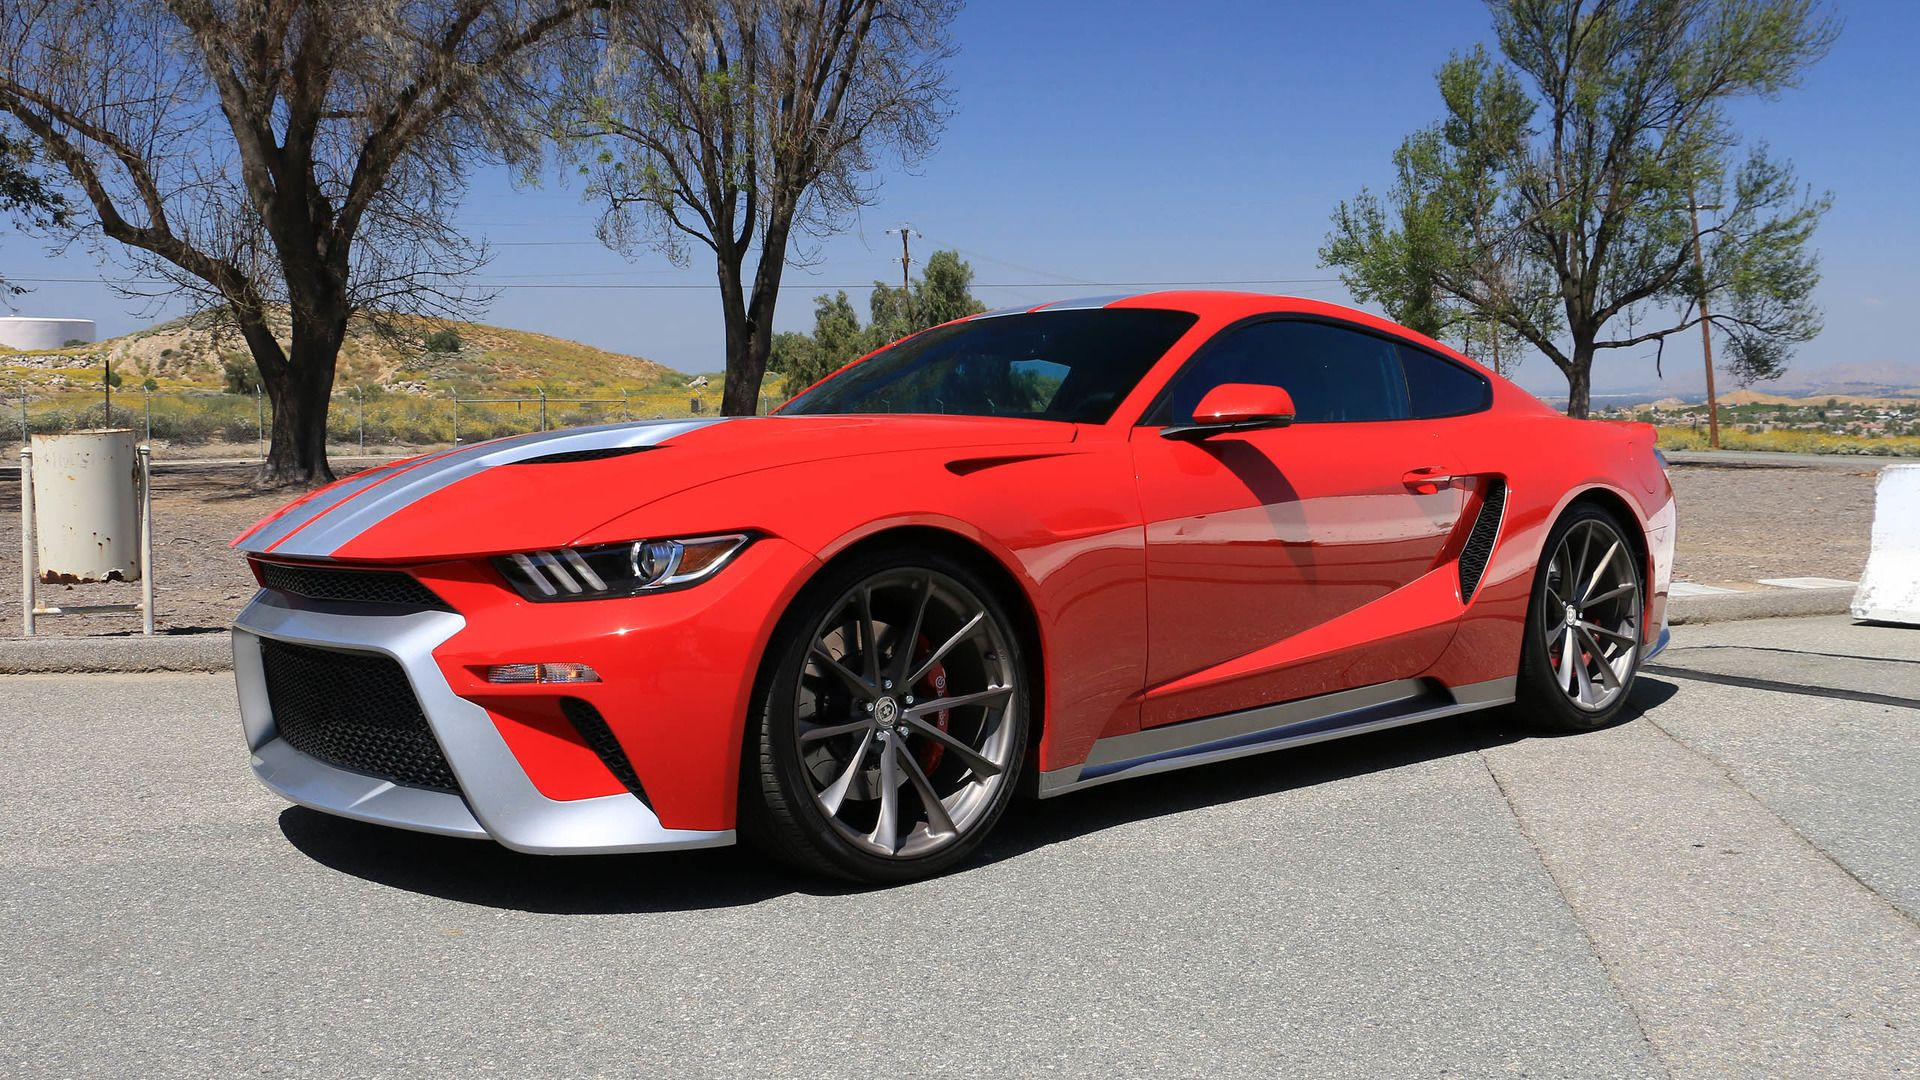 Ford mustang gt modified by zero to 60 designs first drive cars